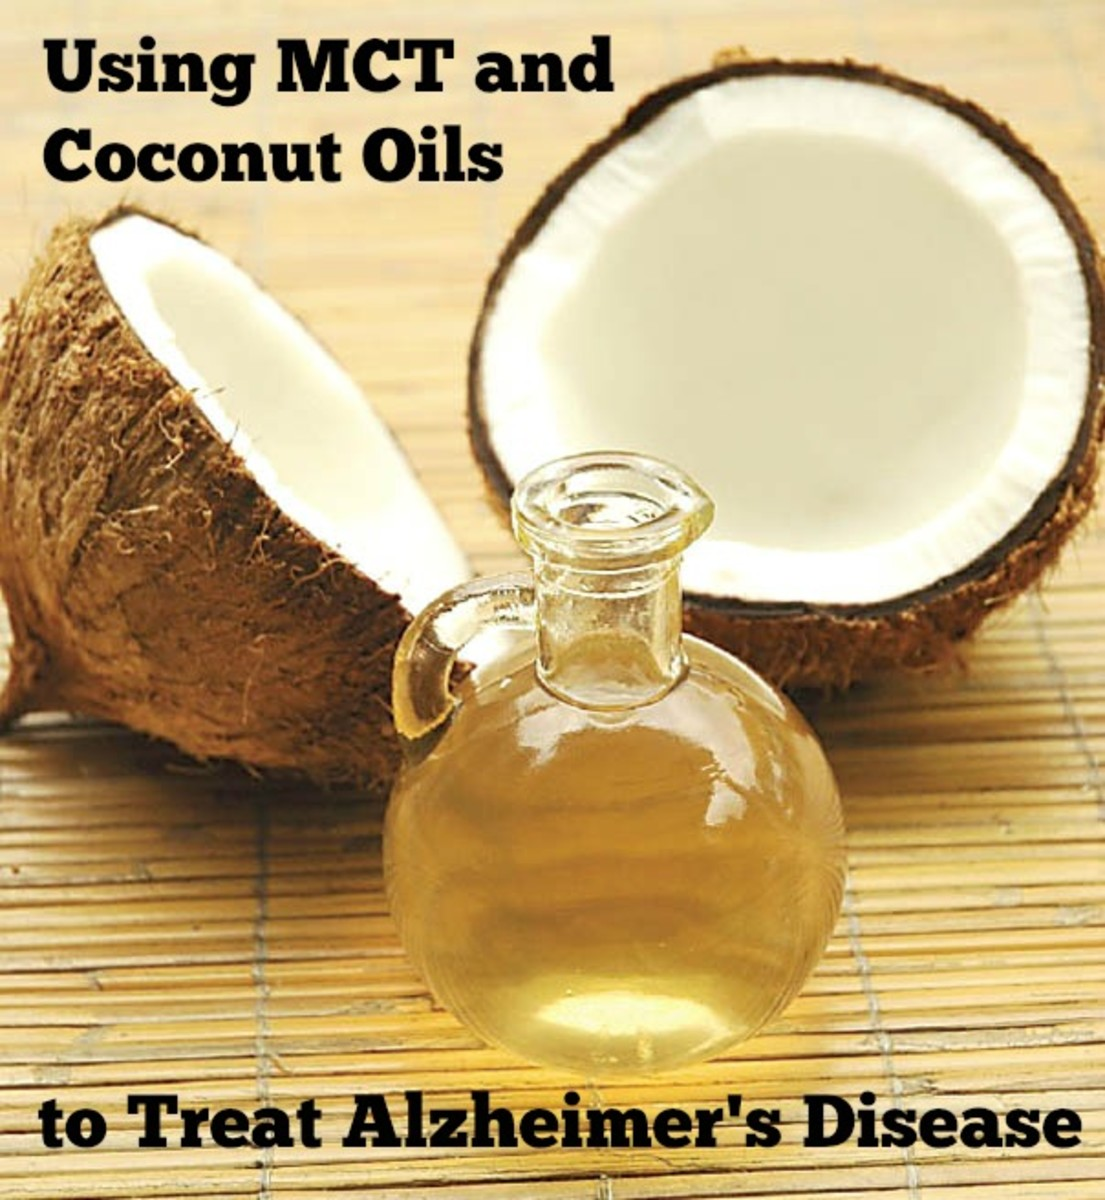 Benefits of MCT and Coconut Oils in the Treatment of Alzheimer's Disease